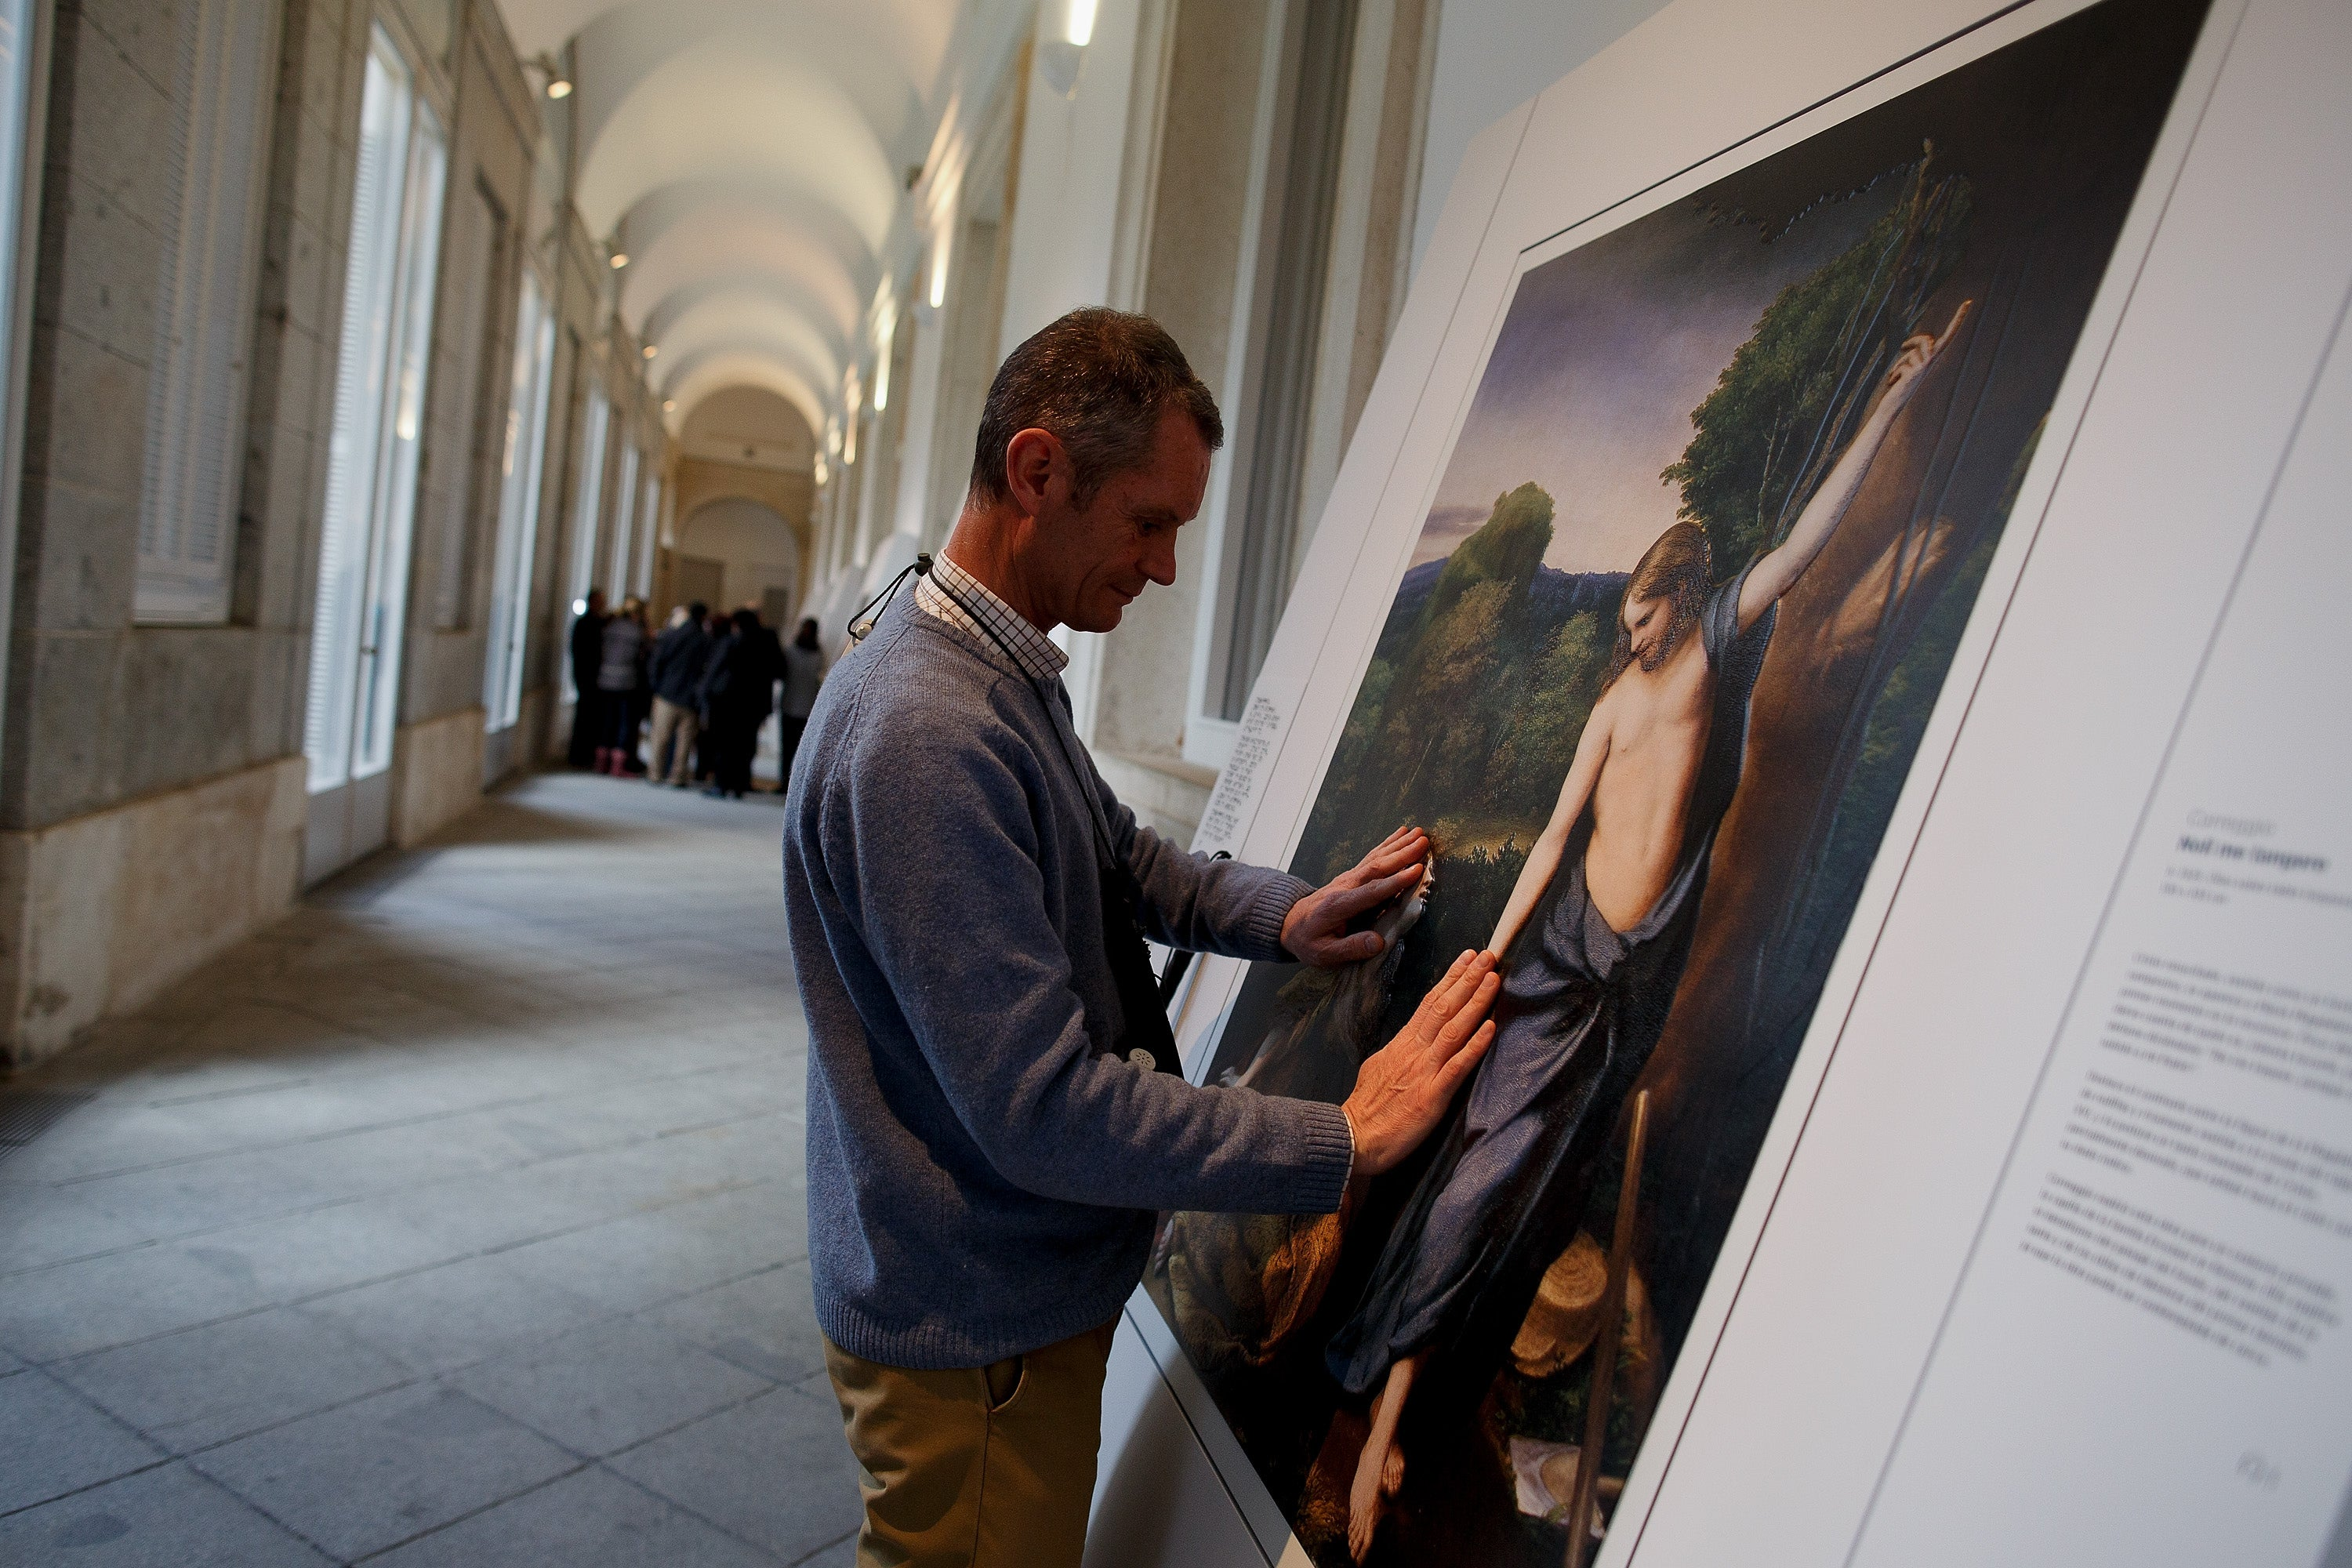 New Printing Tech Allows the Blind to Touch Priceless Paintings